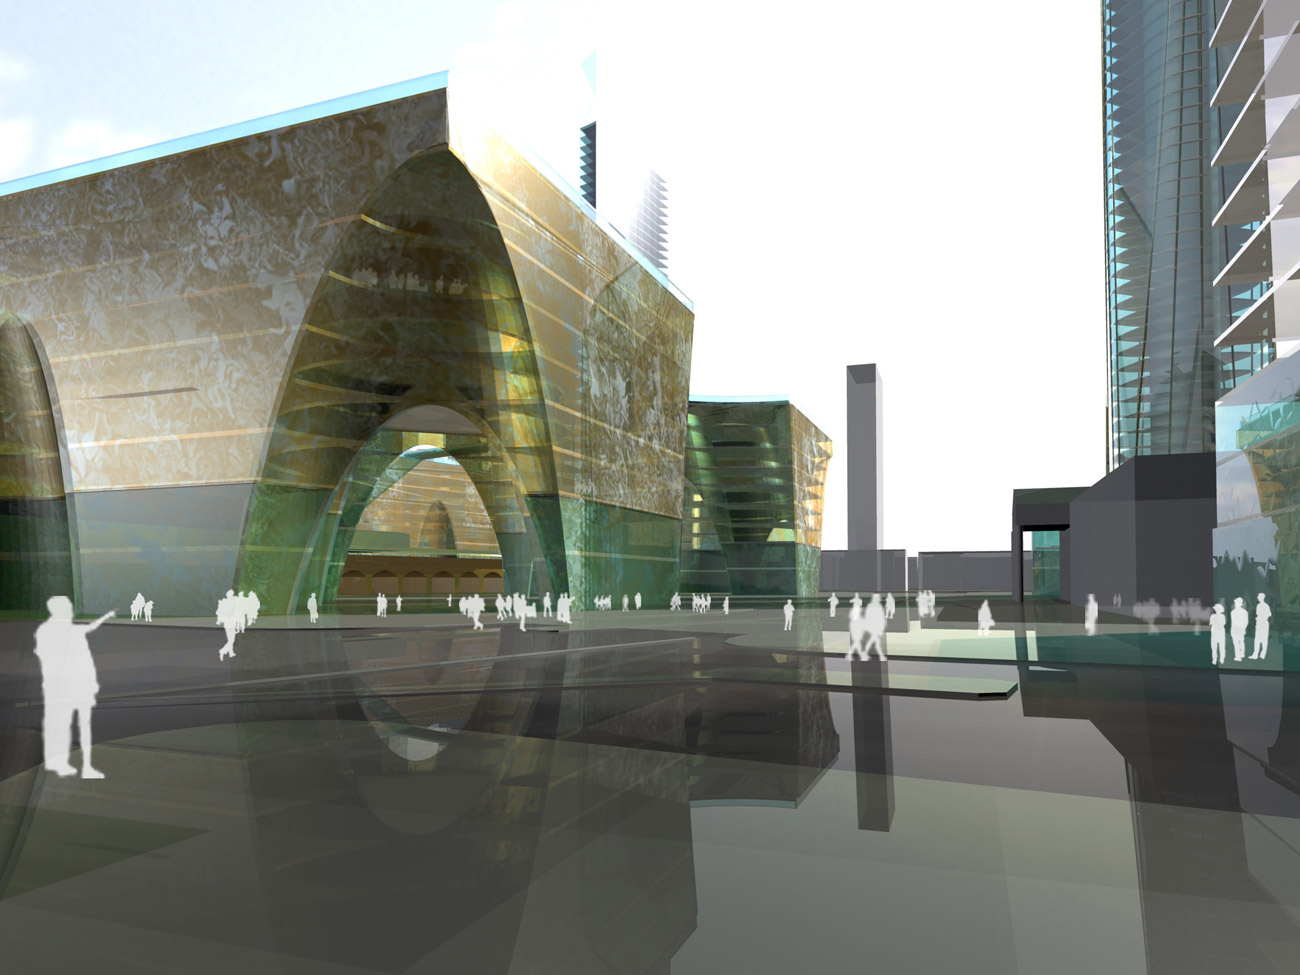 Elephant & Castle Master Plan Corridor View by Marks Barfield Architects